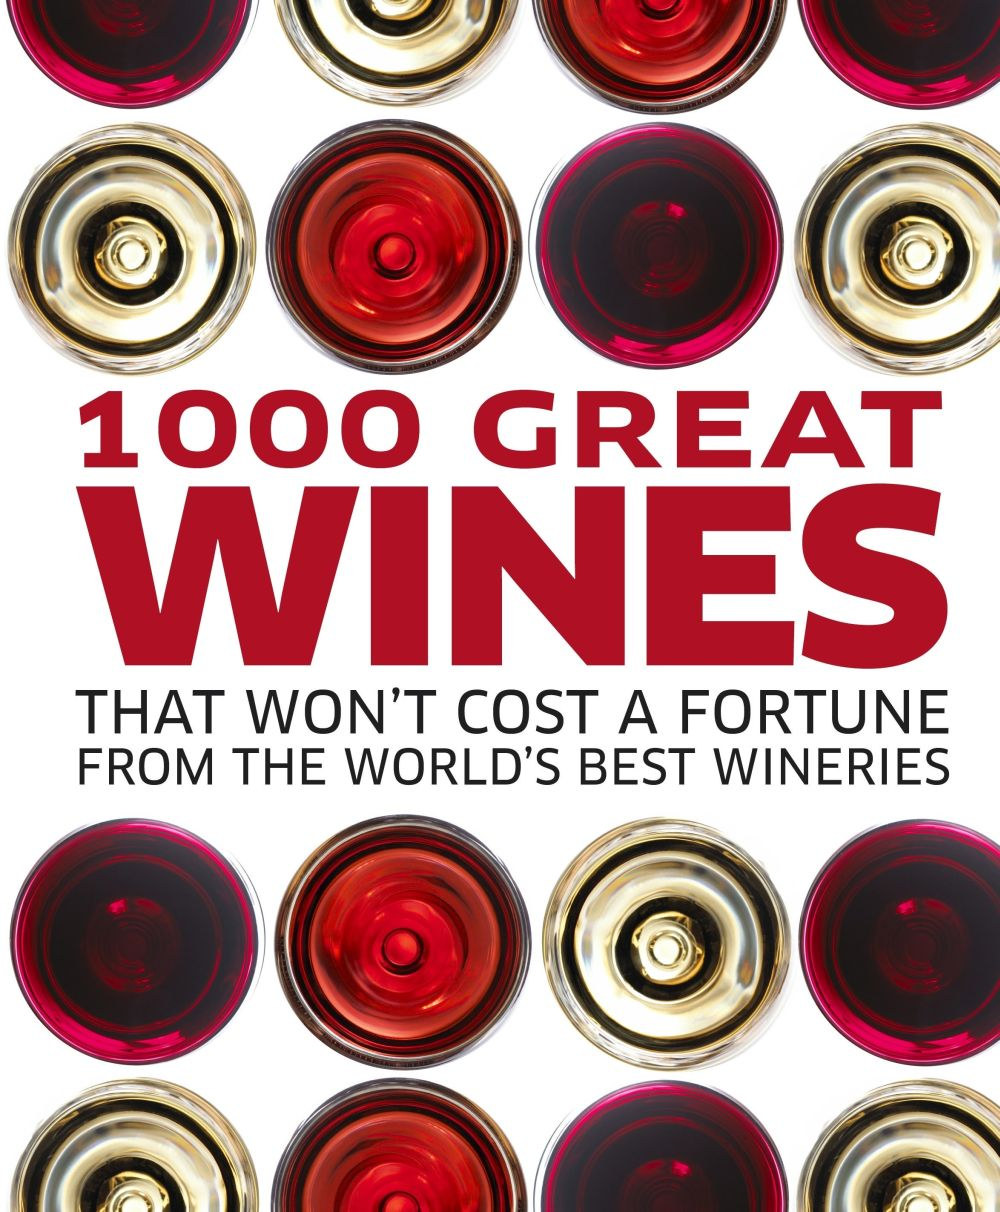 1000 Great Wines That Wont Cost a Fortune